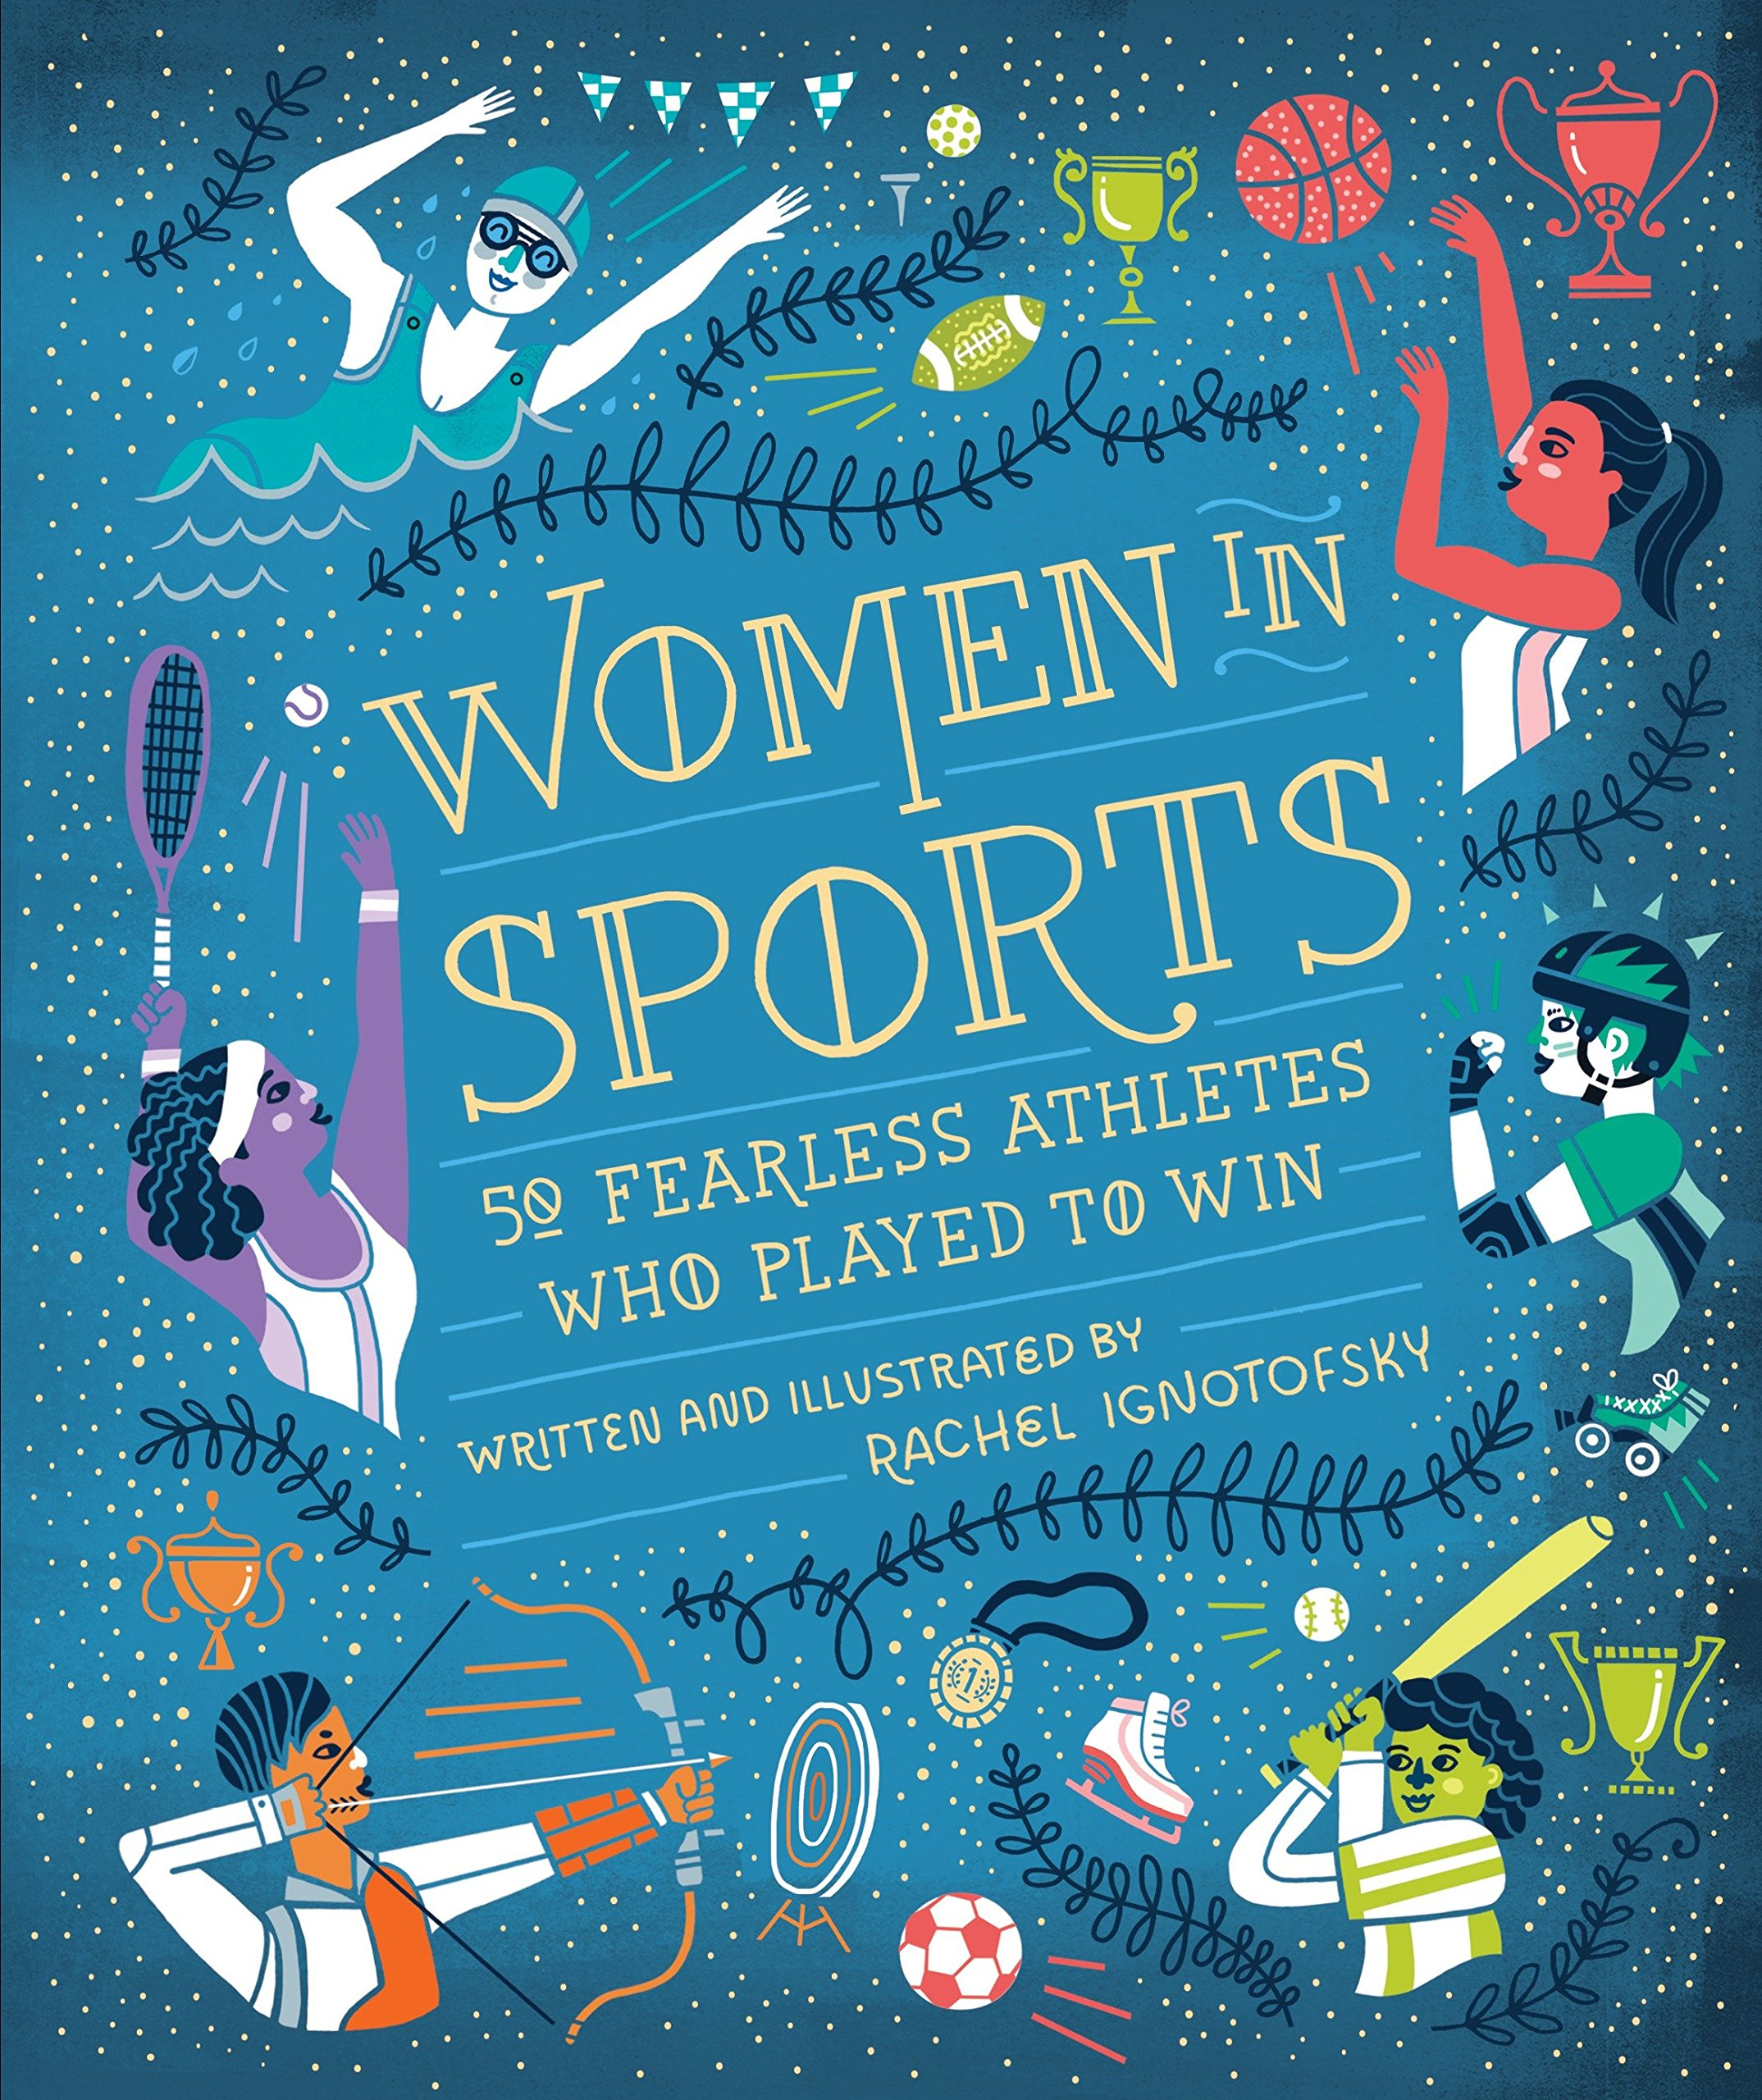 Women in sports : 50 fearless athletes who played to win